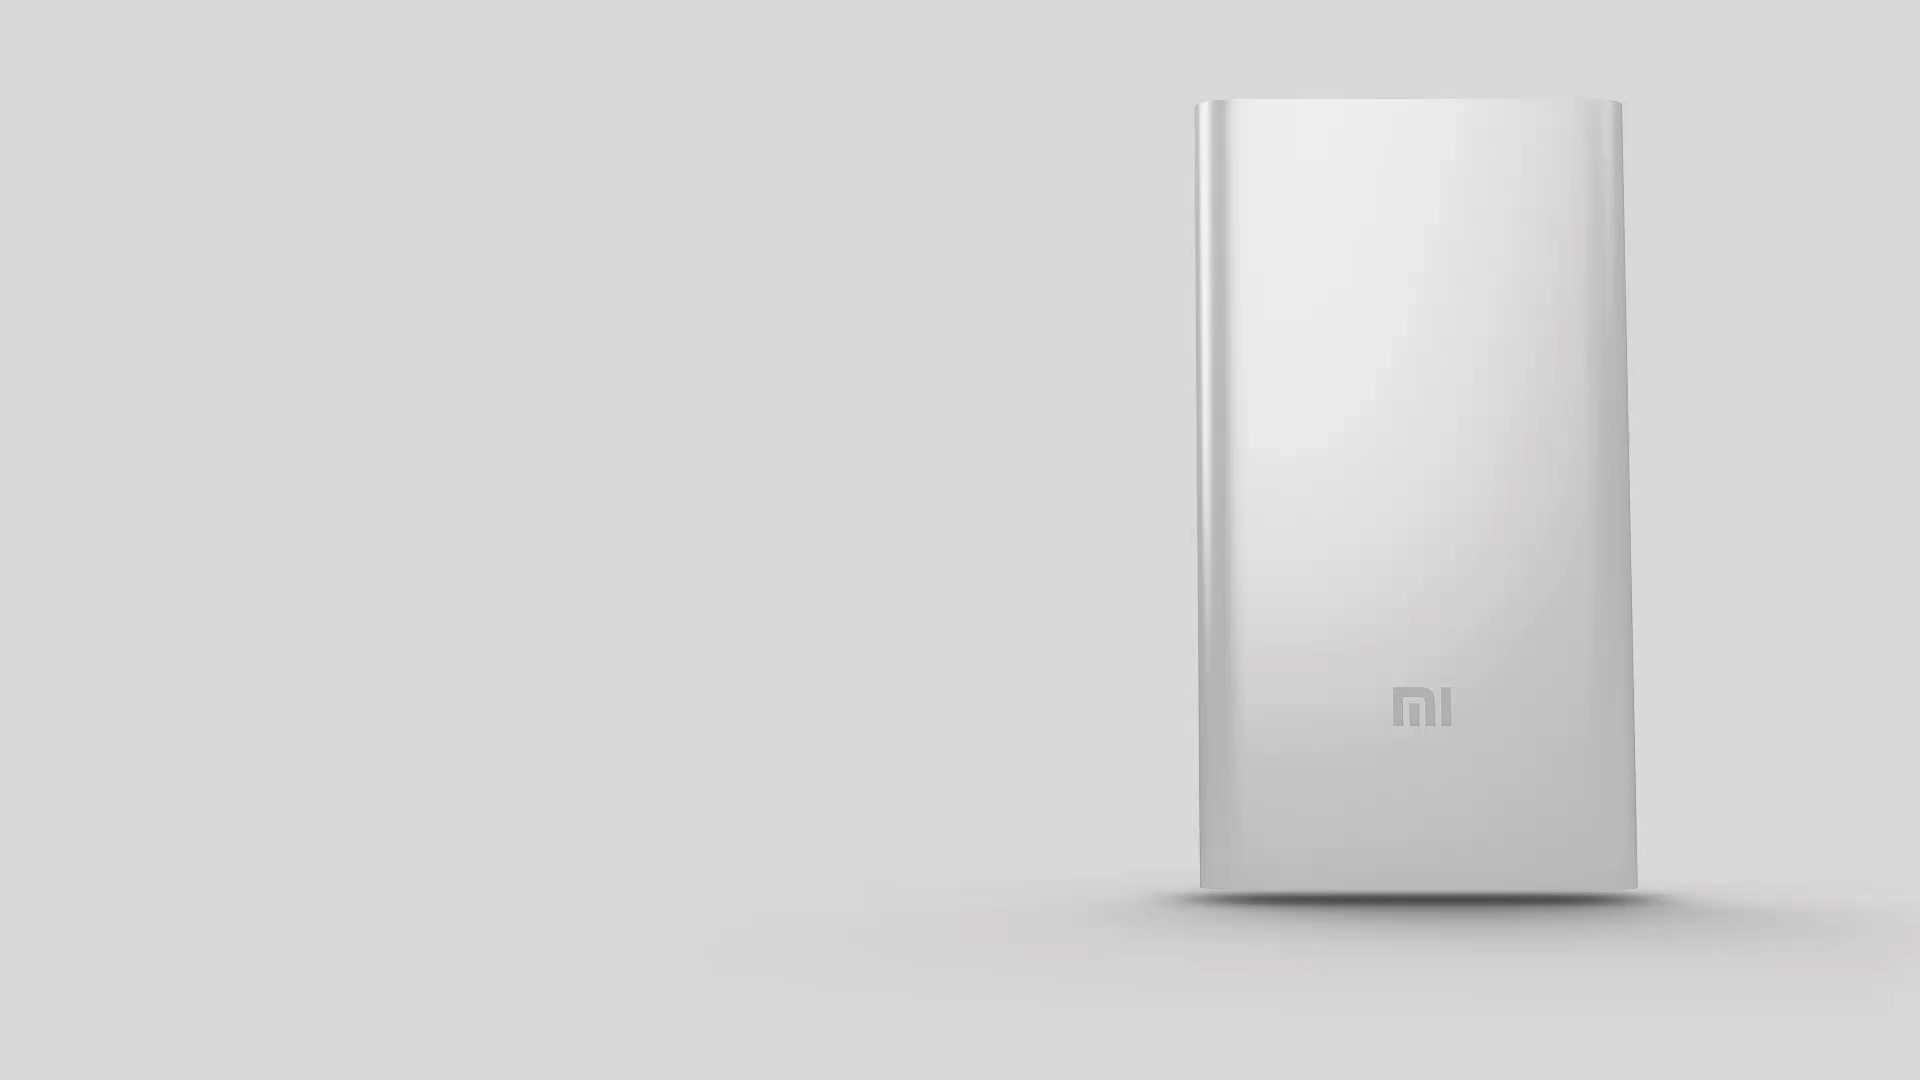 Mi Power Bank 5000mah Malaysia Powerbank Xiaomi Slim 5000 Mah Ori